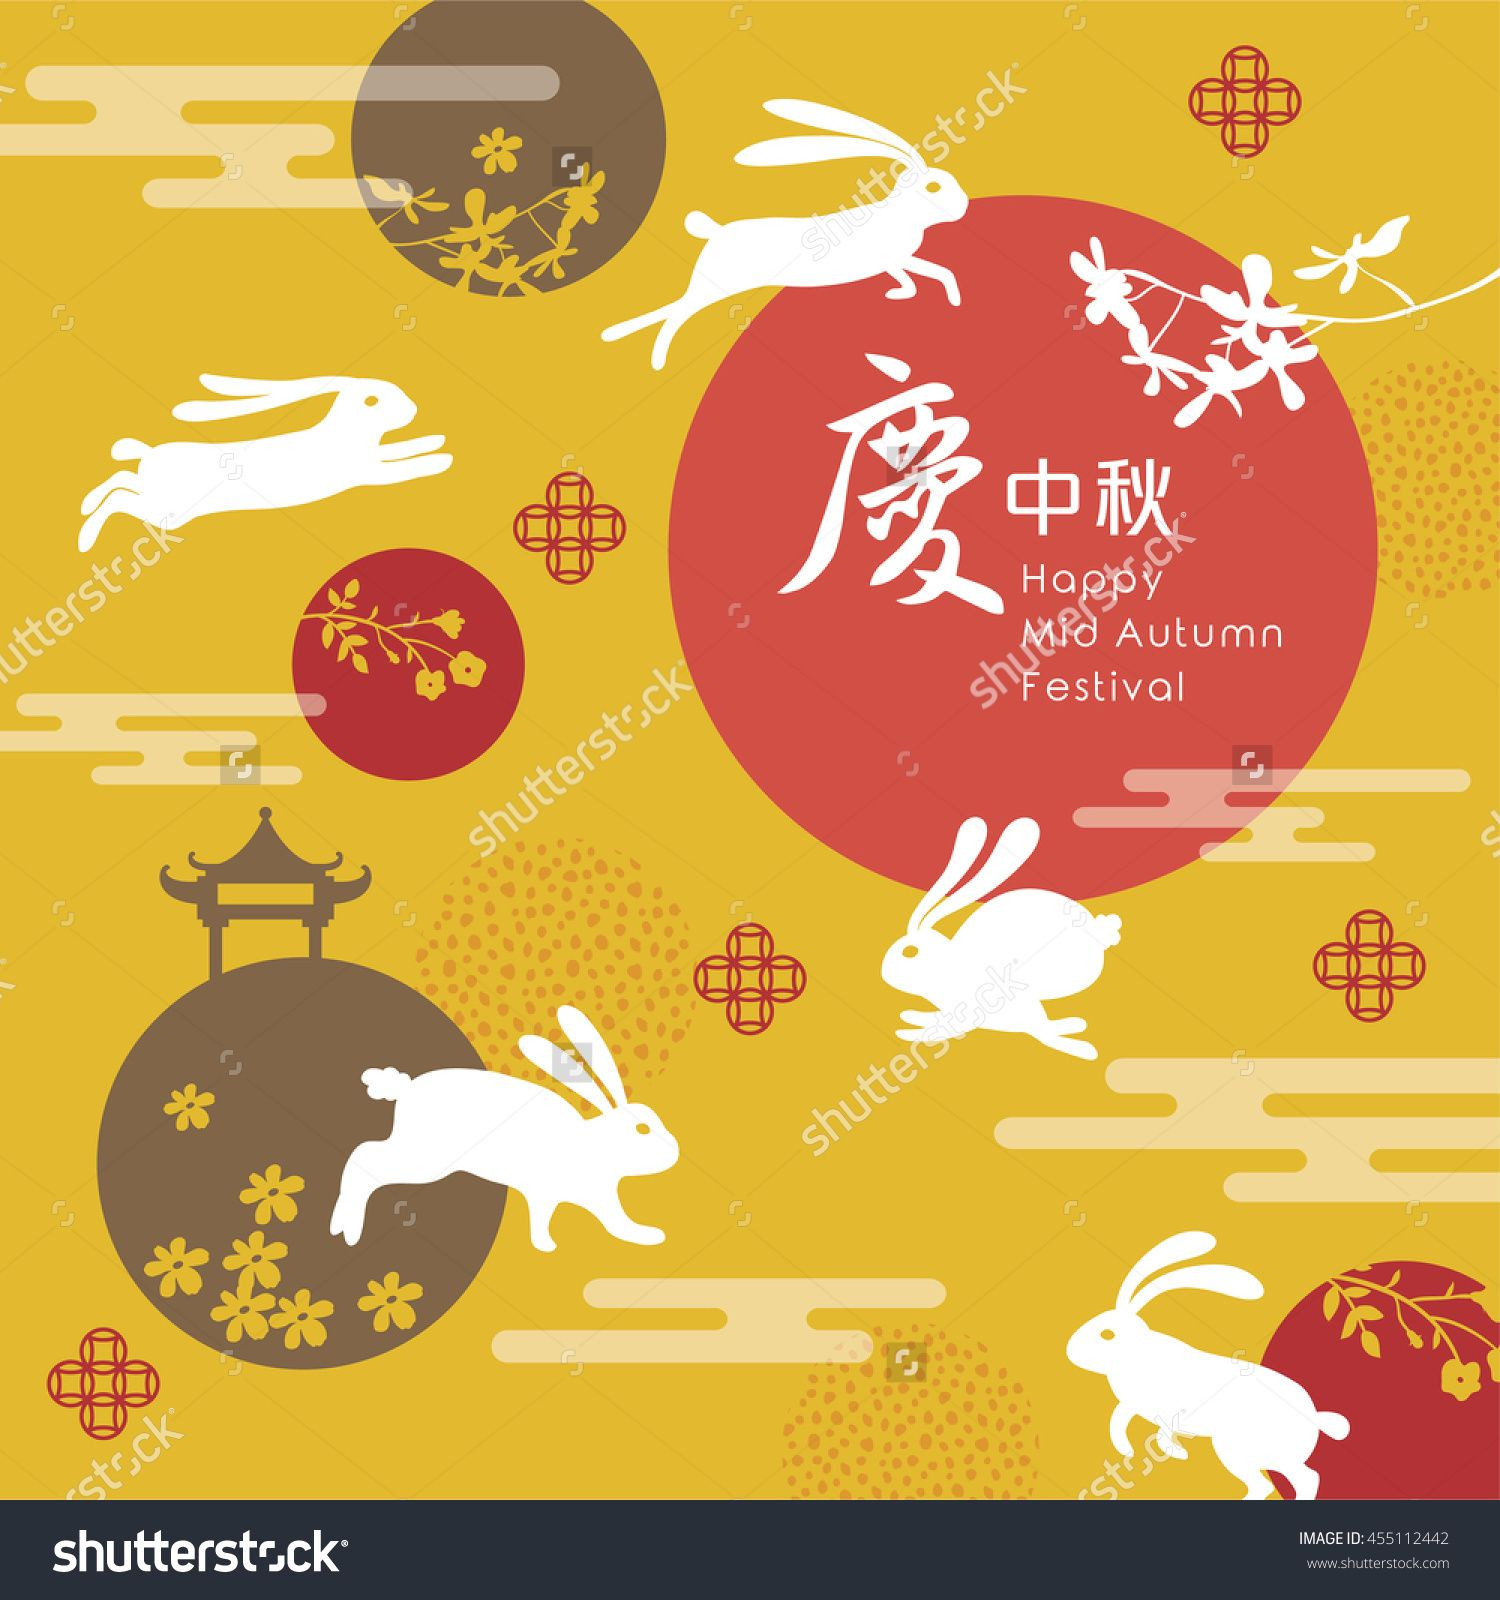 Mid autumn festival design with rabbits and moon chinese translate mid autumn festival design with rabbits and moon chinese translate celebrate kristyandbryce Choice Image